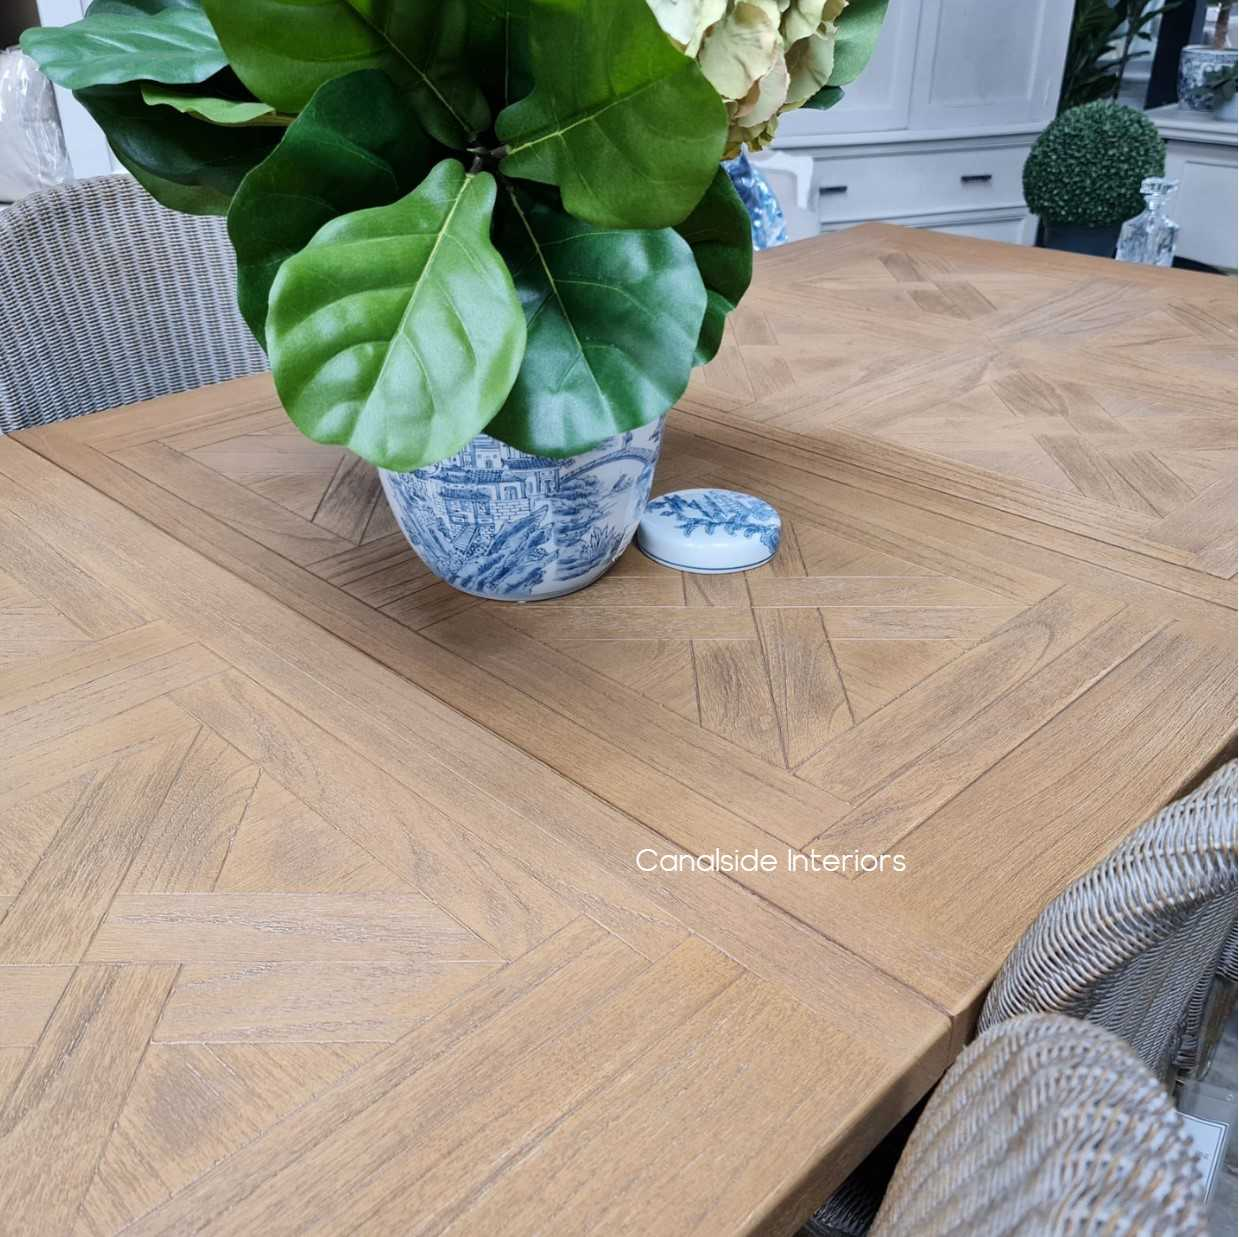 Balmoral Parquetry Double Extension Dining Table tables, extension tables, hamptons, hamptons table, provincial, plantation, dining tables, trestle base, dining room